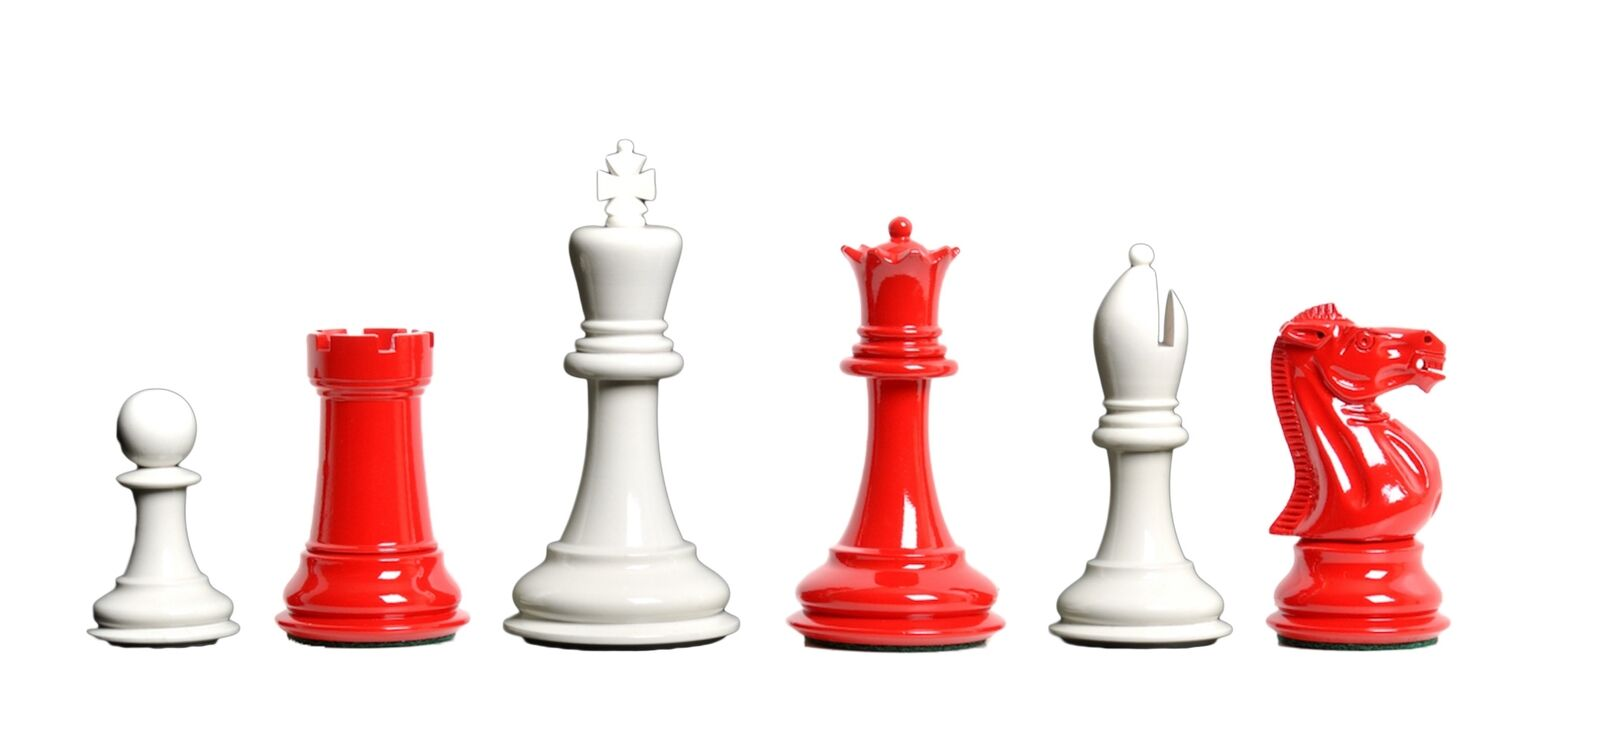 USCF Sales The Professional Professional Professional Chess Set - Pieces Only - 3.75  King - Red and White 074ff1